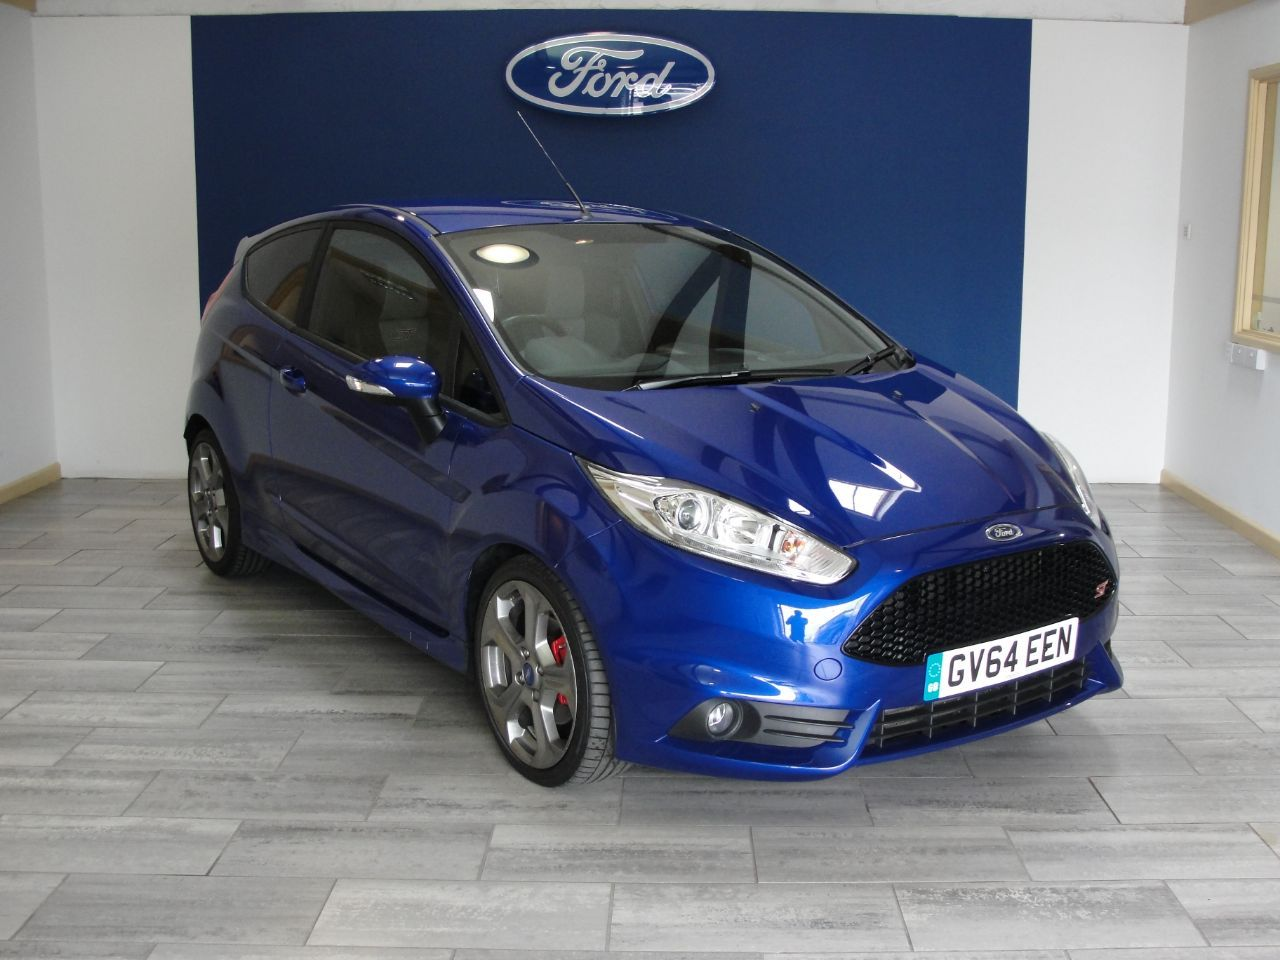 Ford Fiesta 1 6 Ecoboost St 2 3dr Hatchback Petrol Blue Used Ford Ford Fiesta Ford